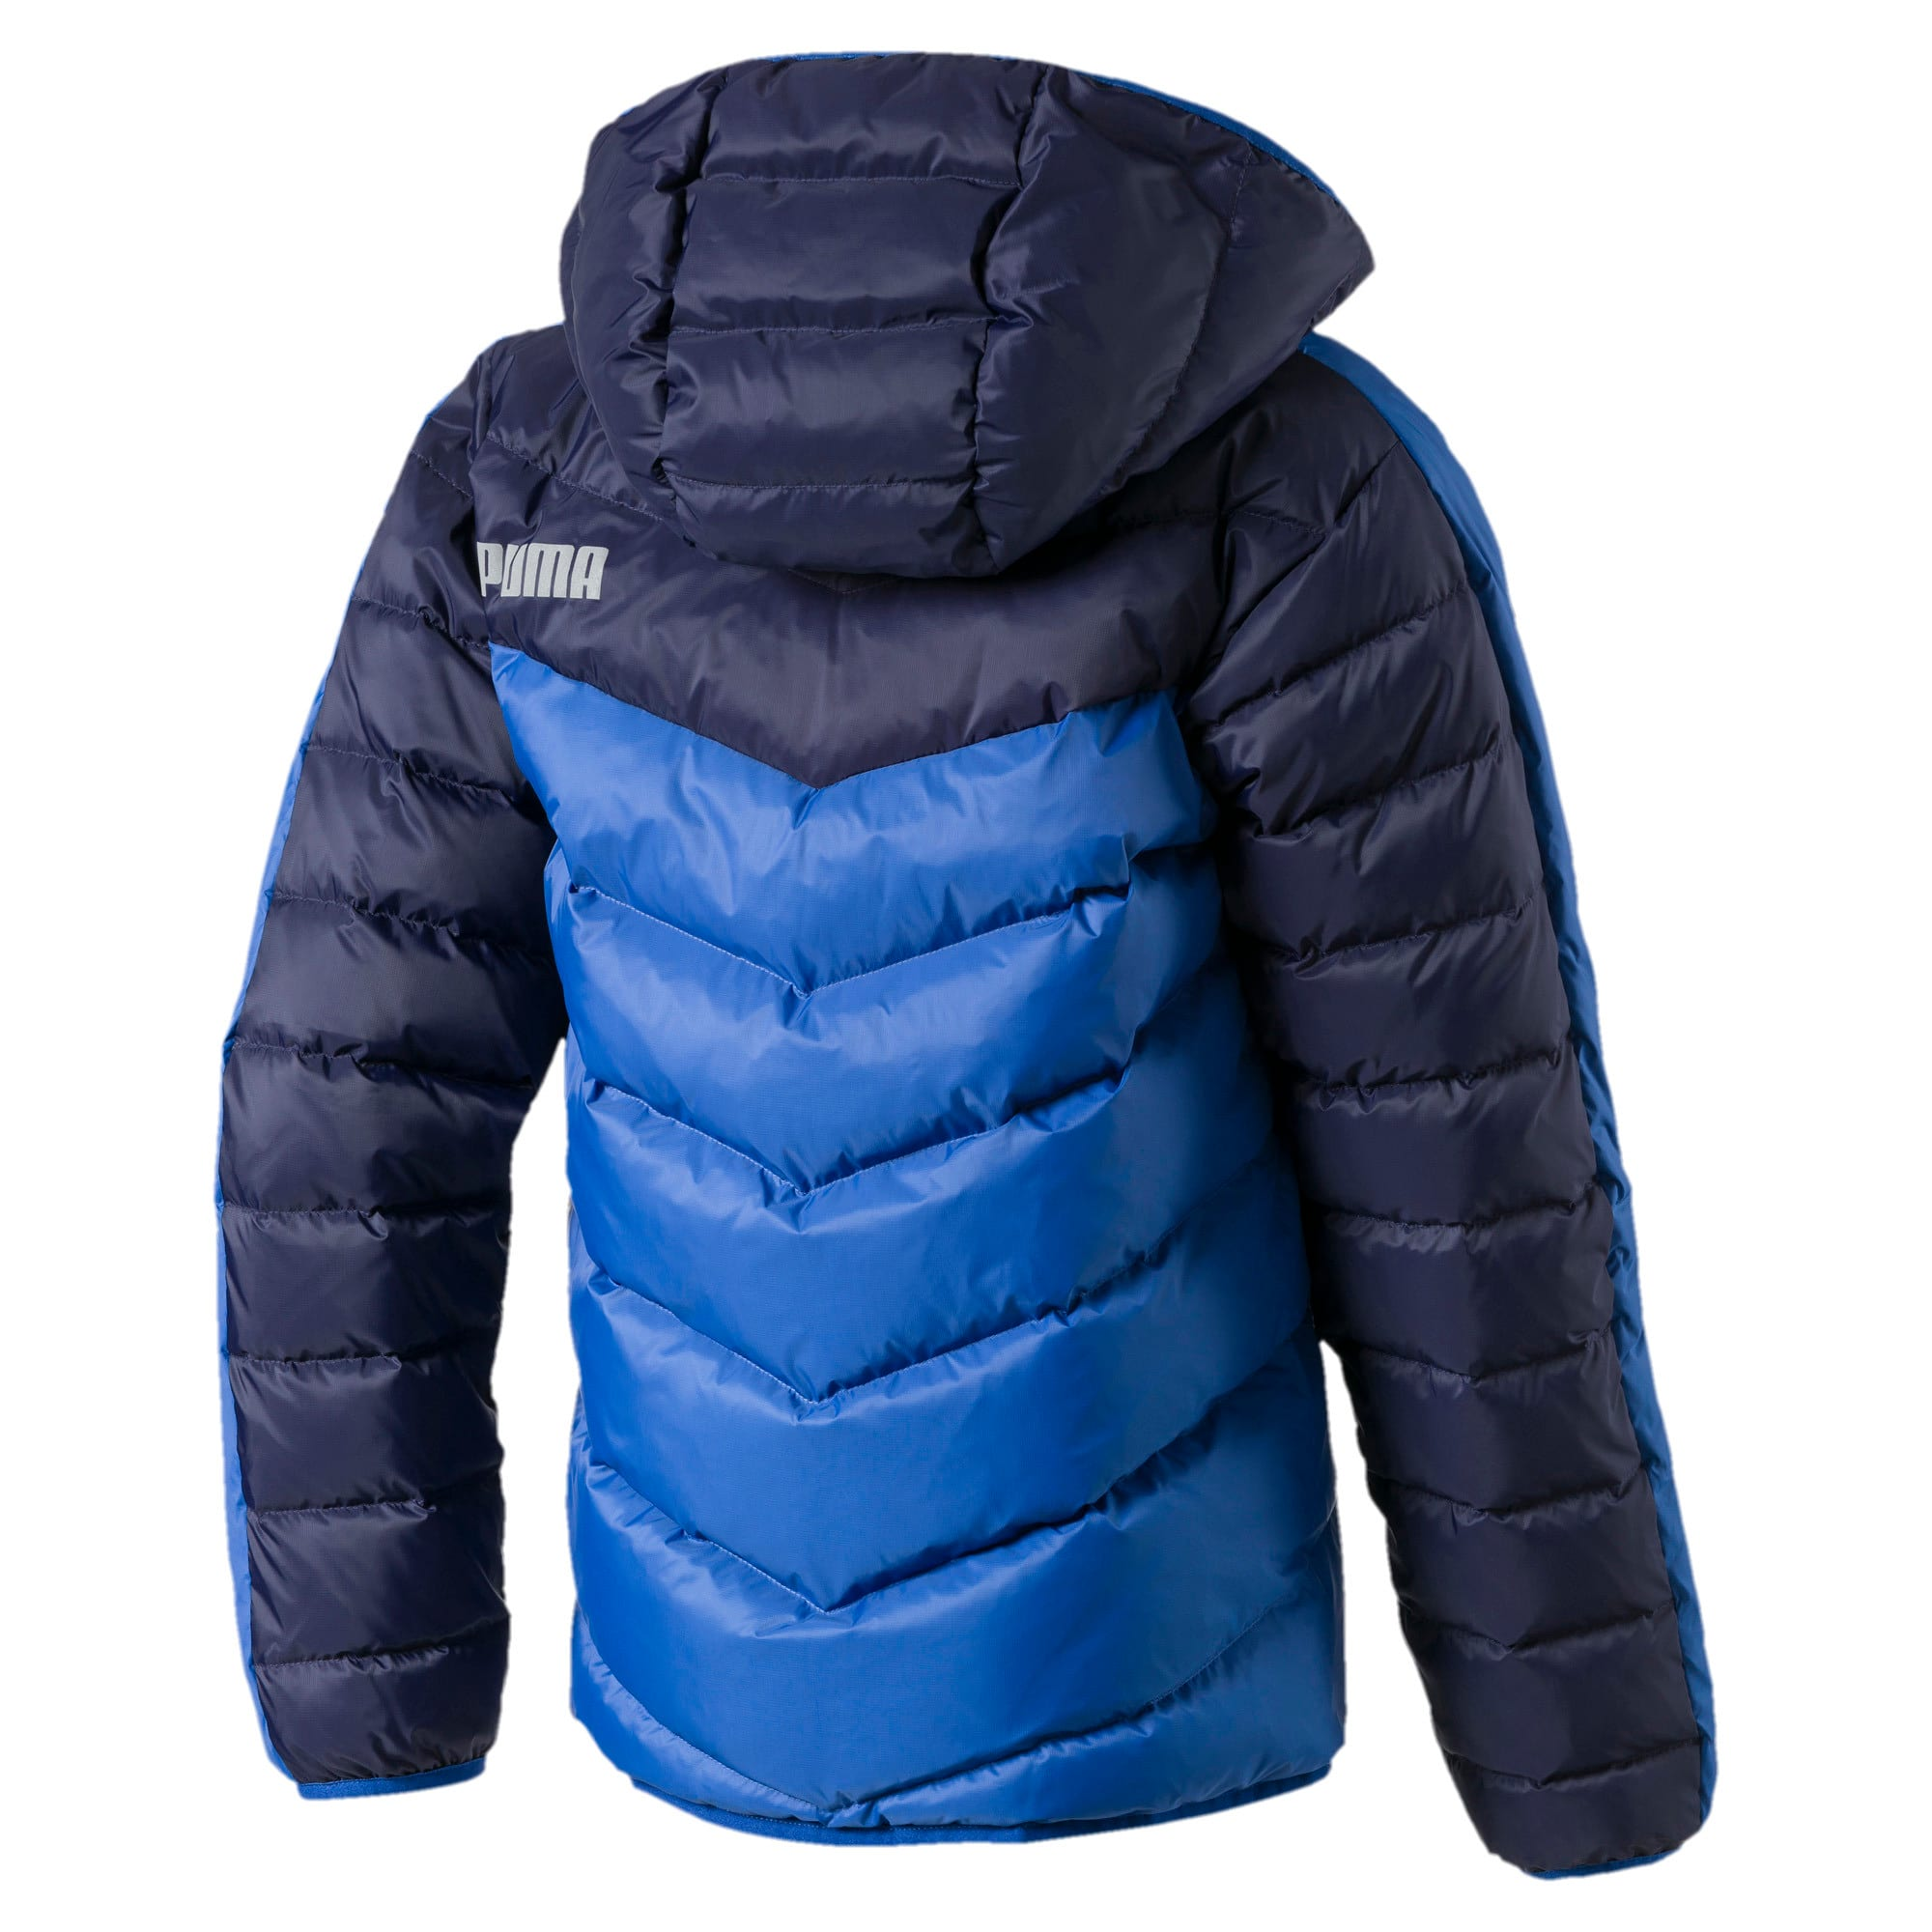 Active Boys' Jacket, Galaxy Blue-Peacoat, large